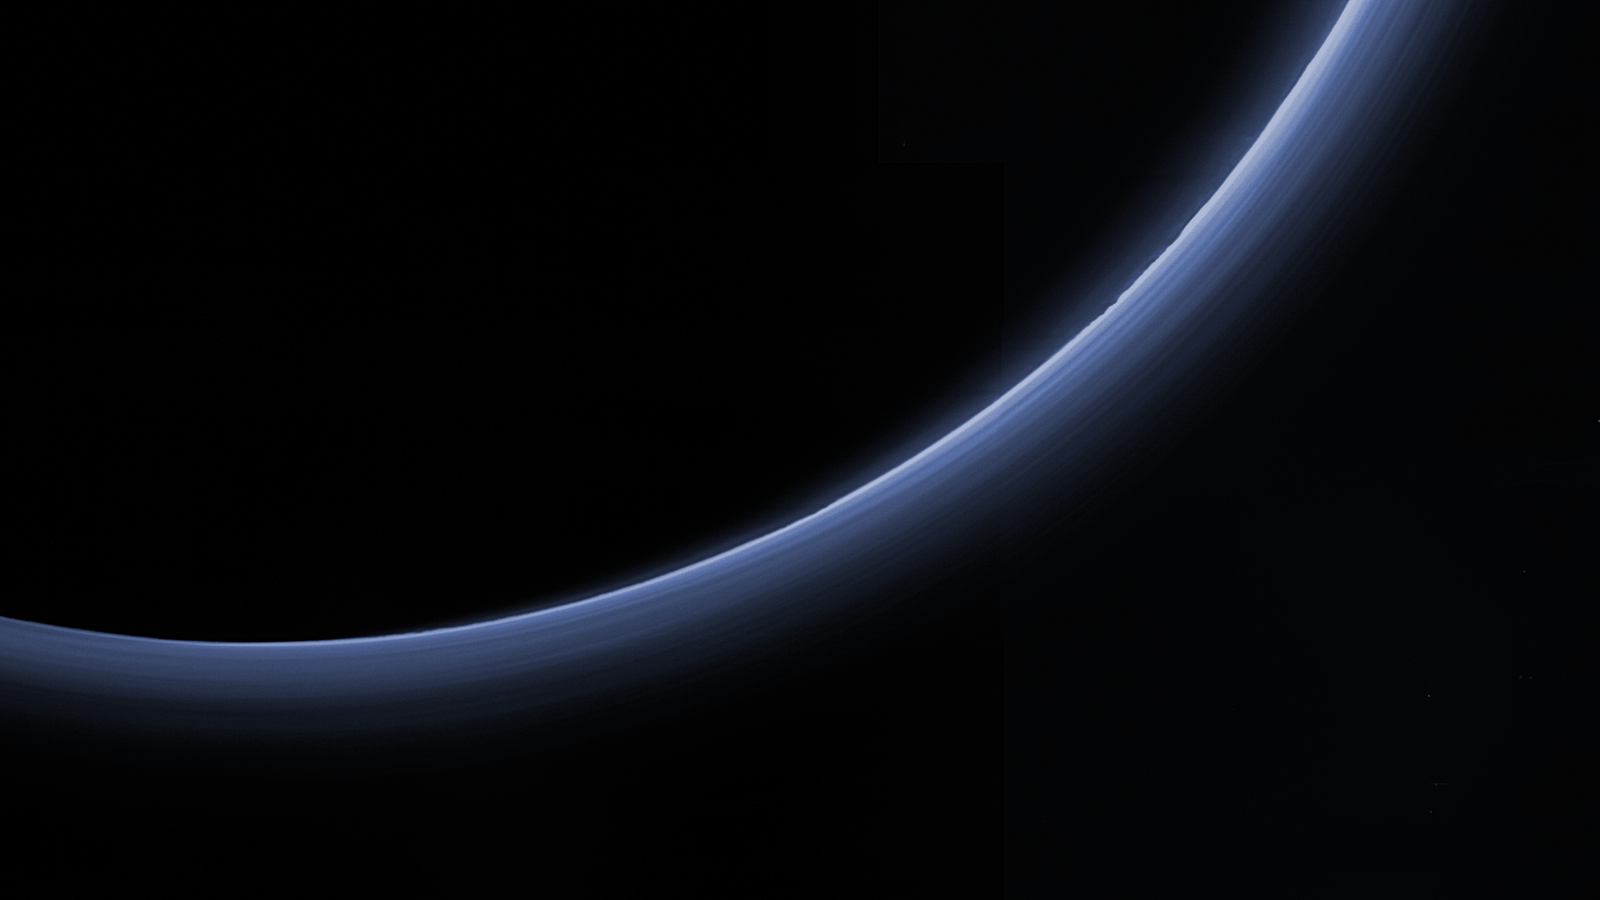 Pluto s atmosphere seen in beautiful high definition for Define pluto